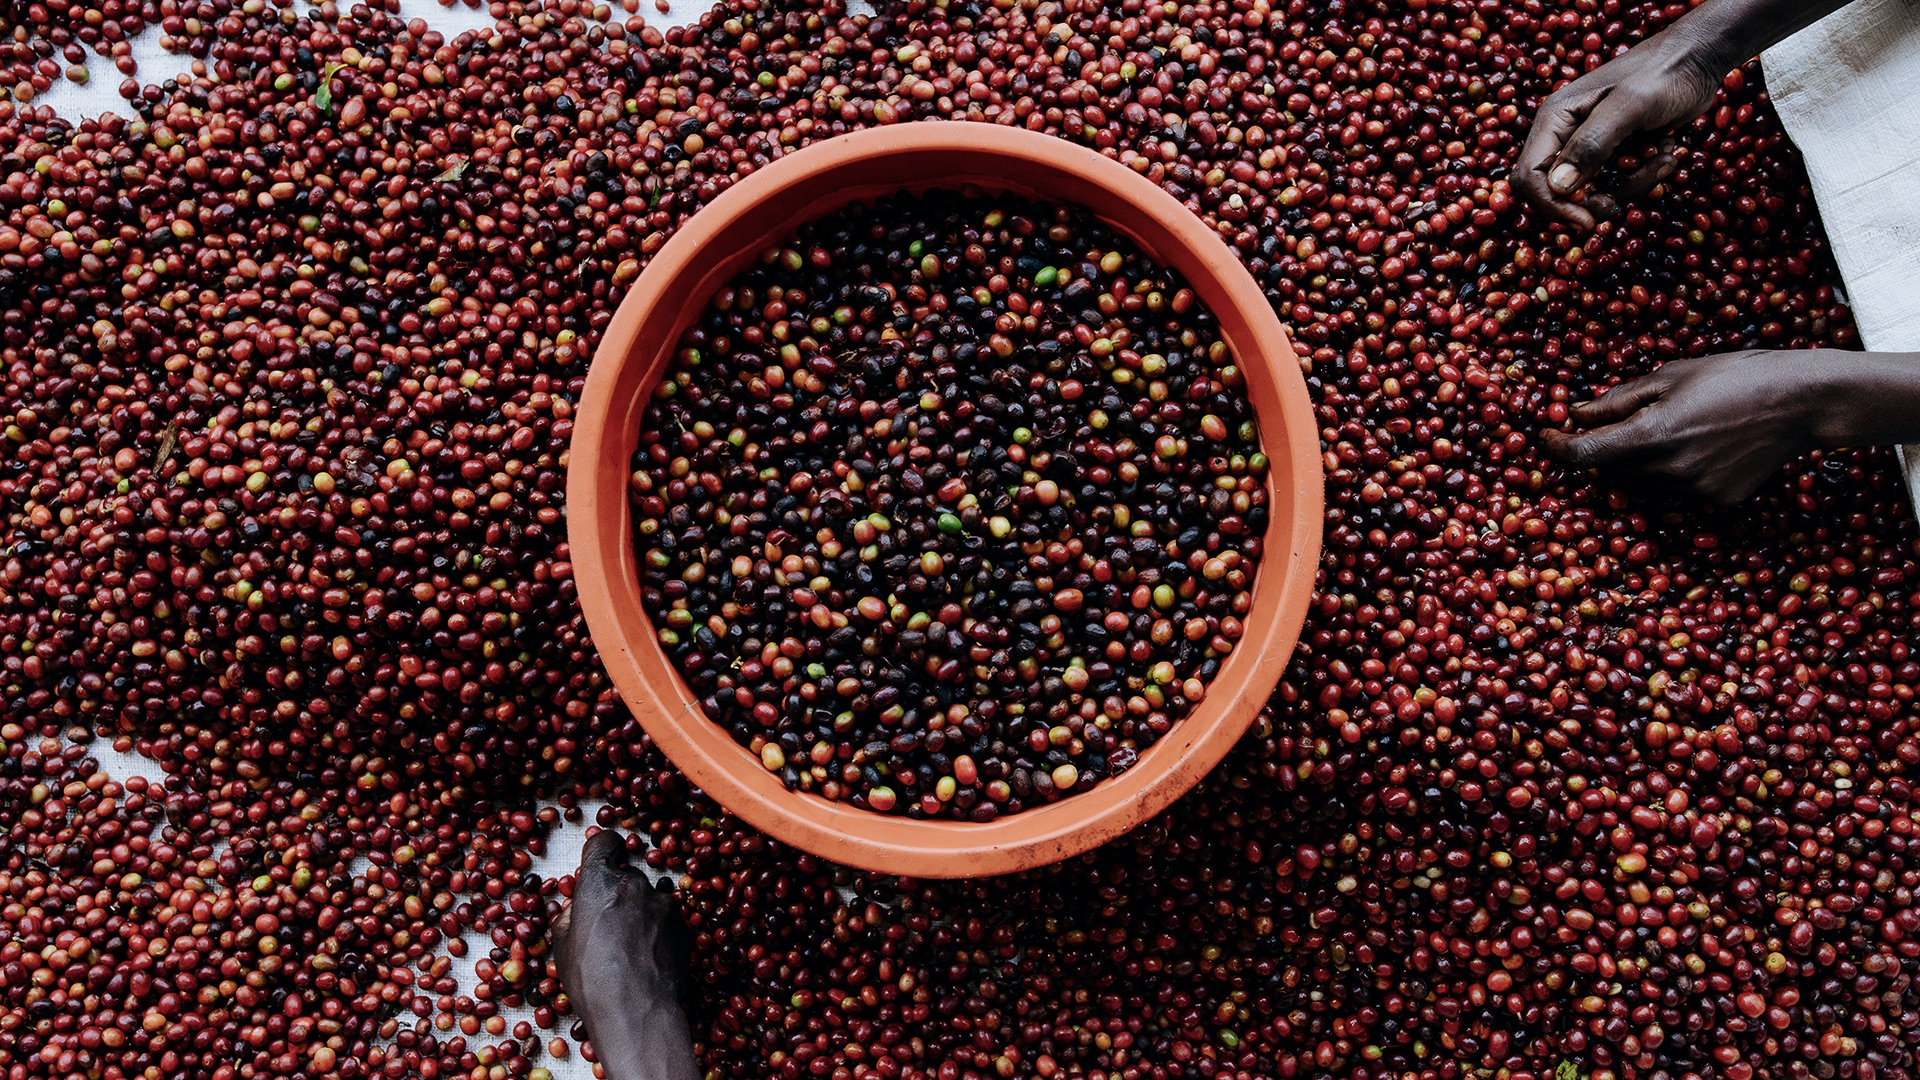 Population growth hampers coffee production